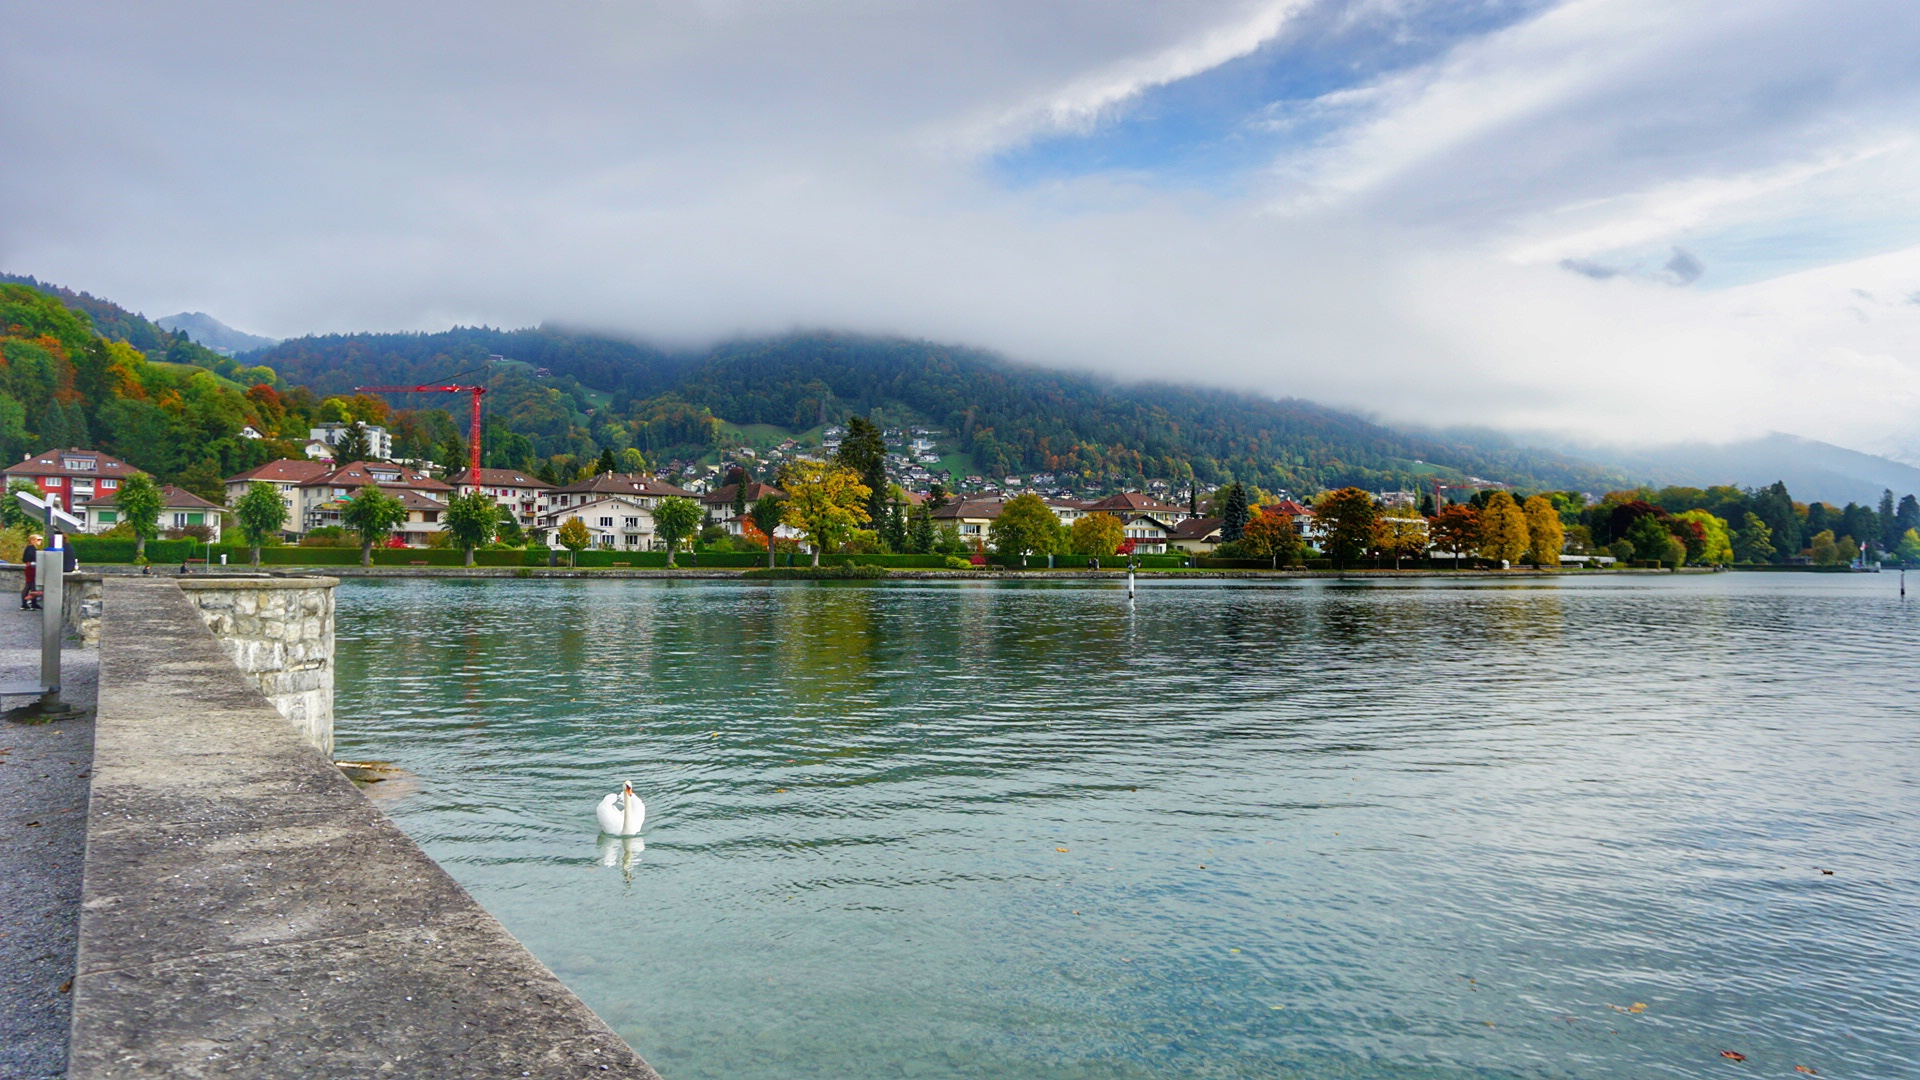 Best things to see in Thun Switzerland